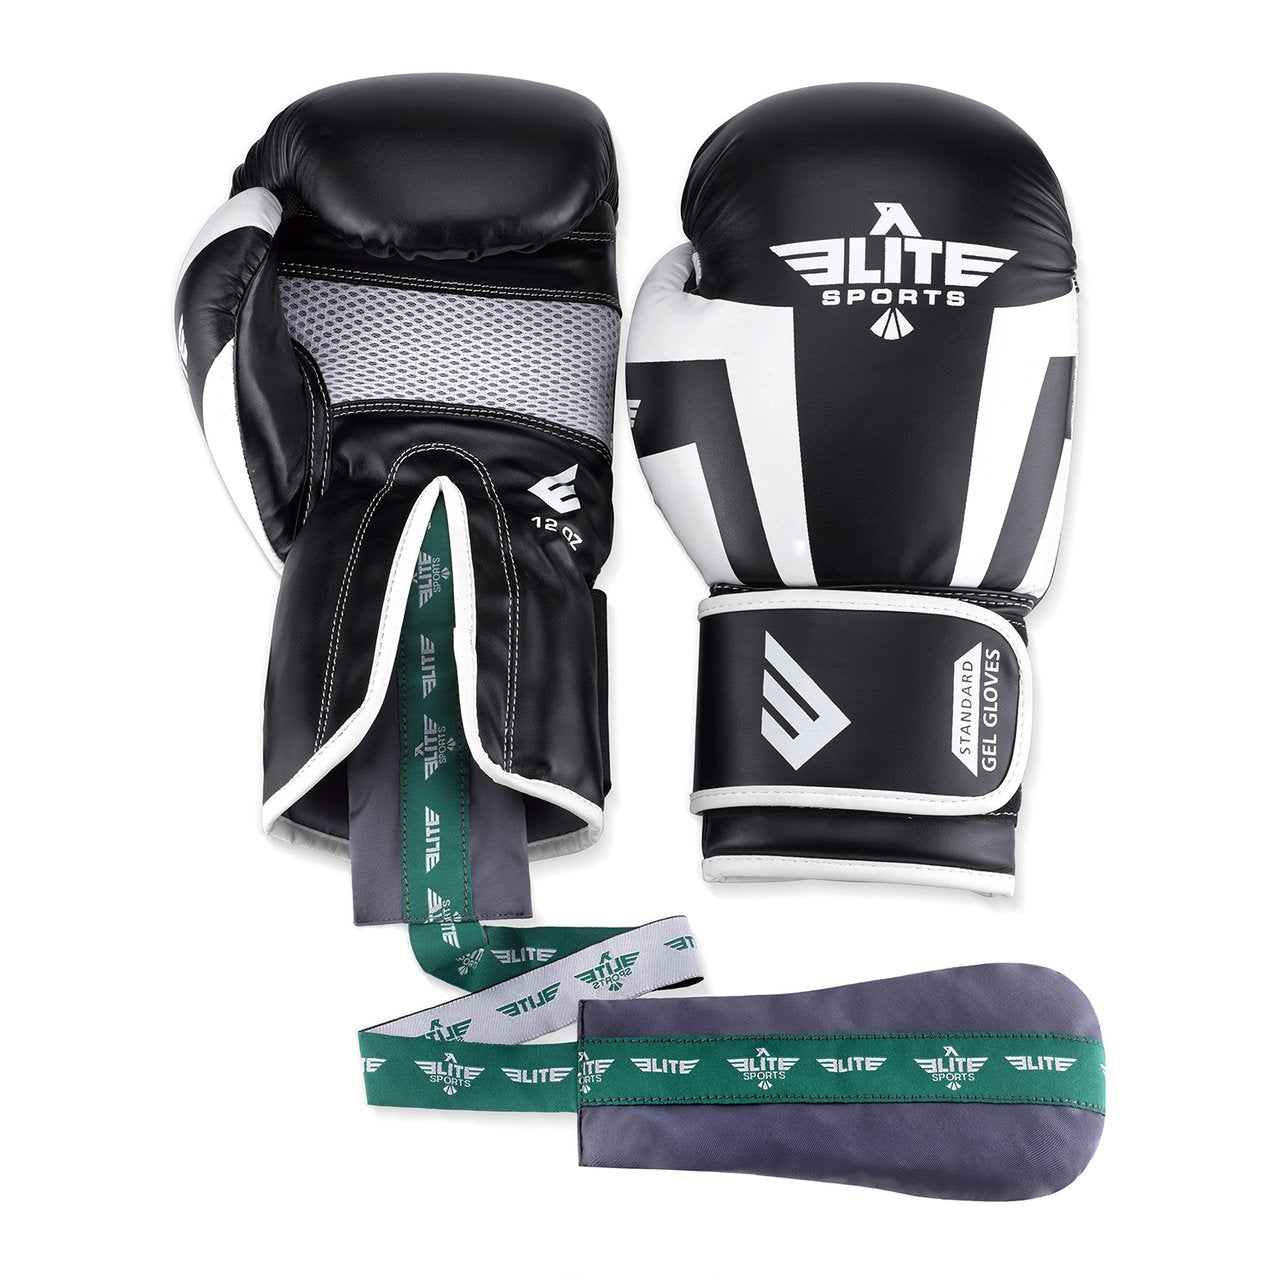 Load image into Gallery viewer, Elite Sports Gray Boxing Glove Deodorizers